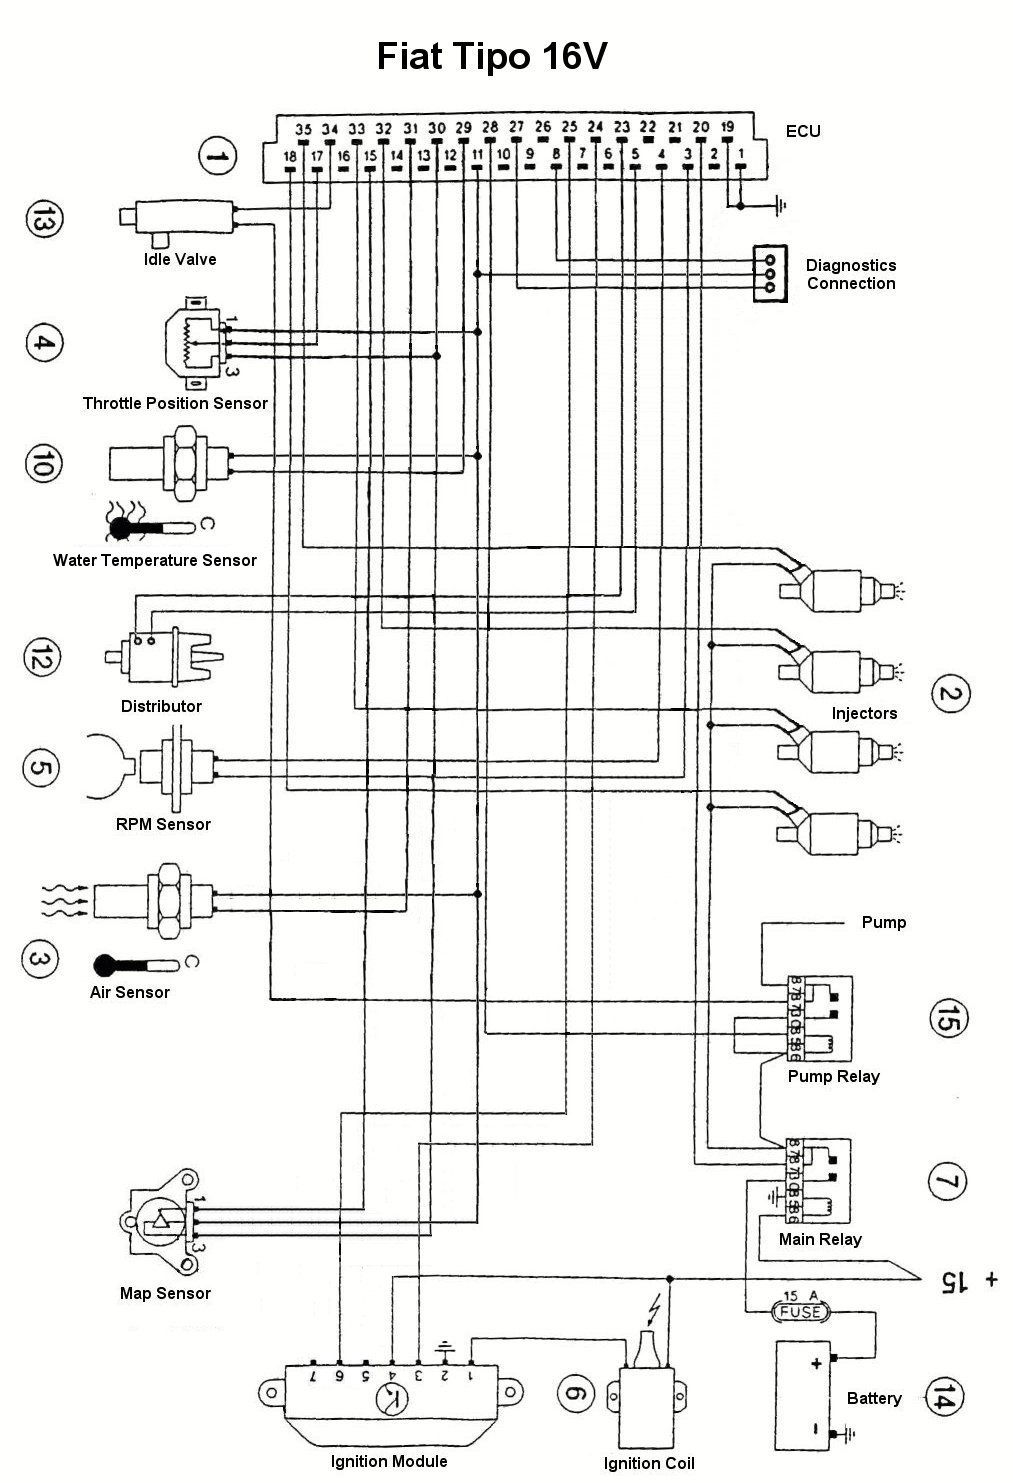 wiring diagram rh tipo16v co uk